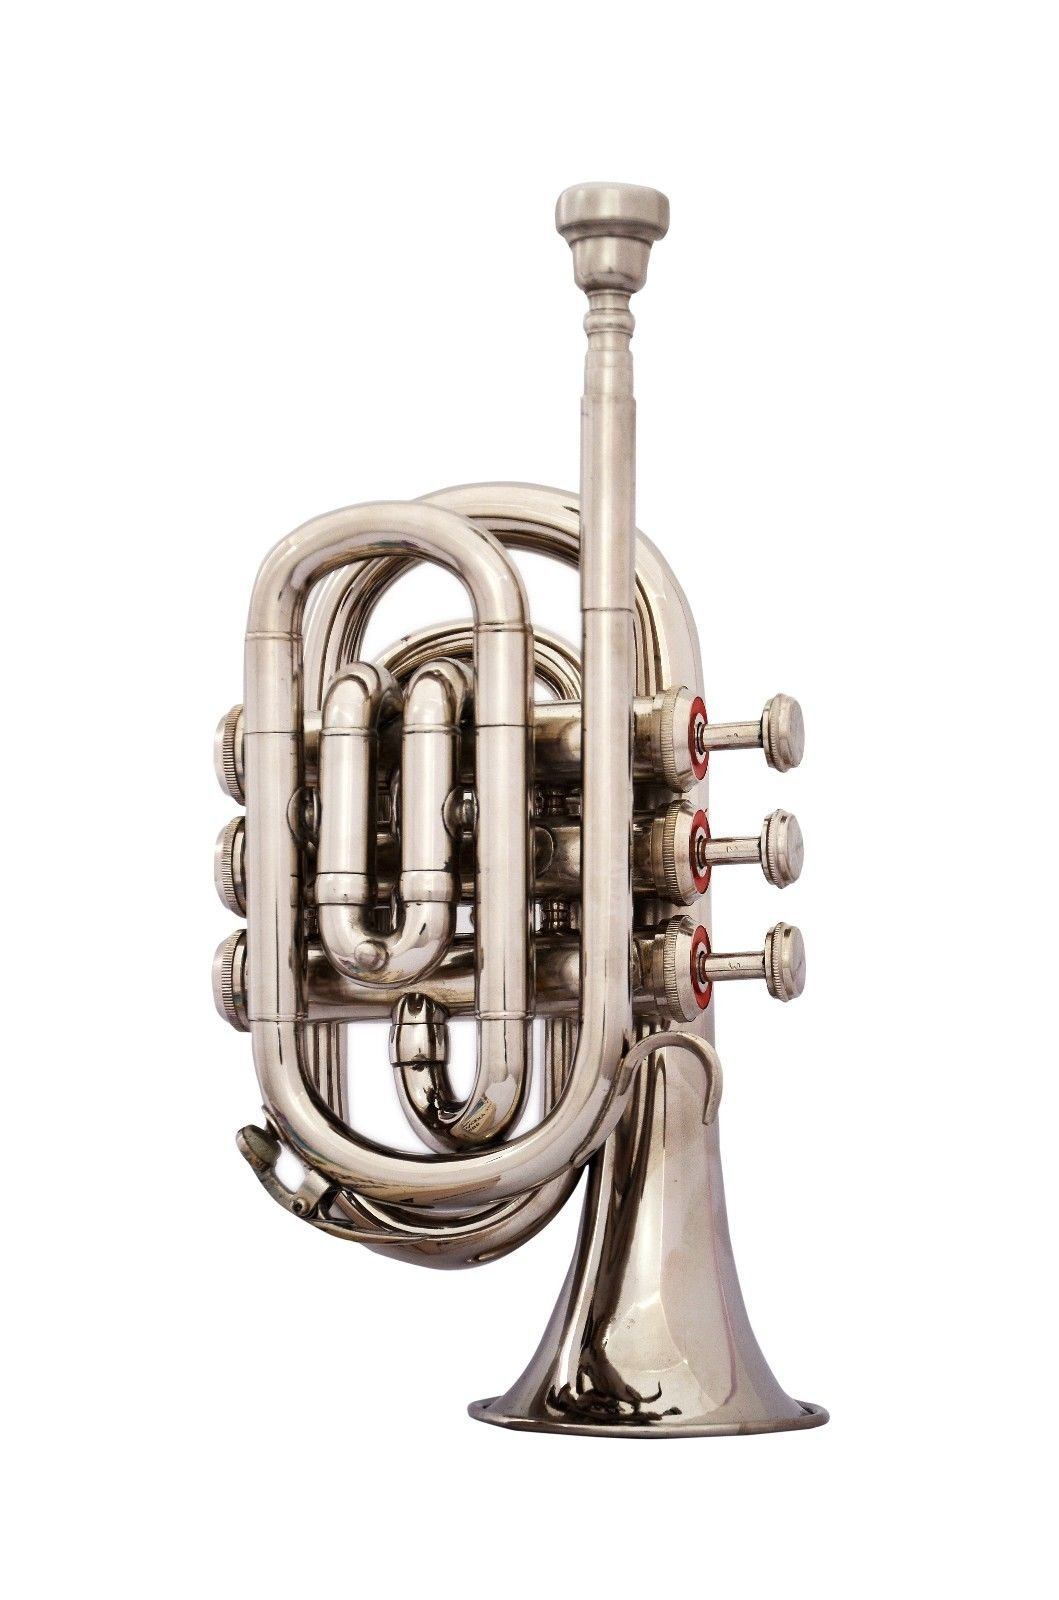 SHREYAS TRUMPET POCKET Bb NICKEL PLATED WITH BAG 7C MOUTH PIECE